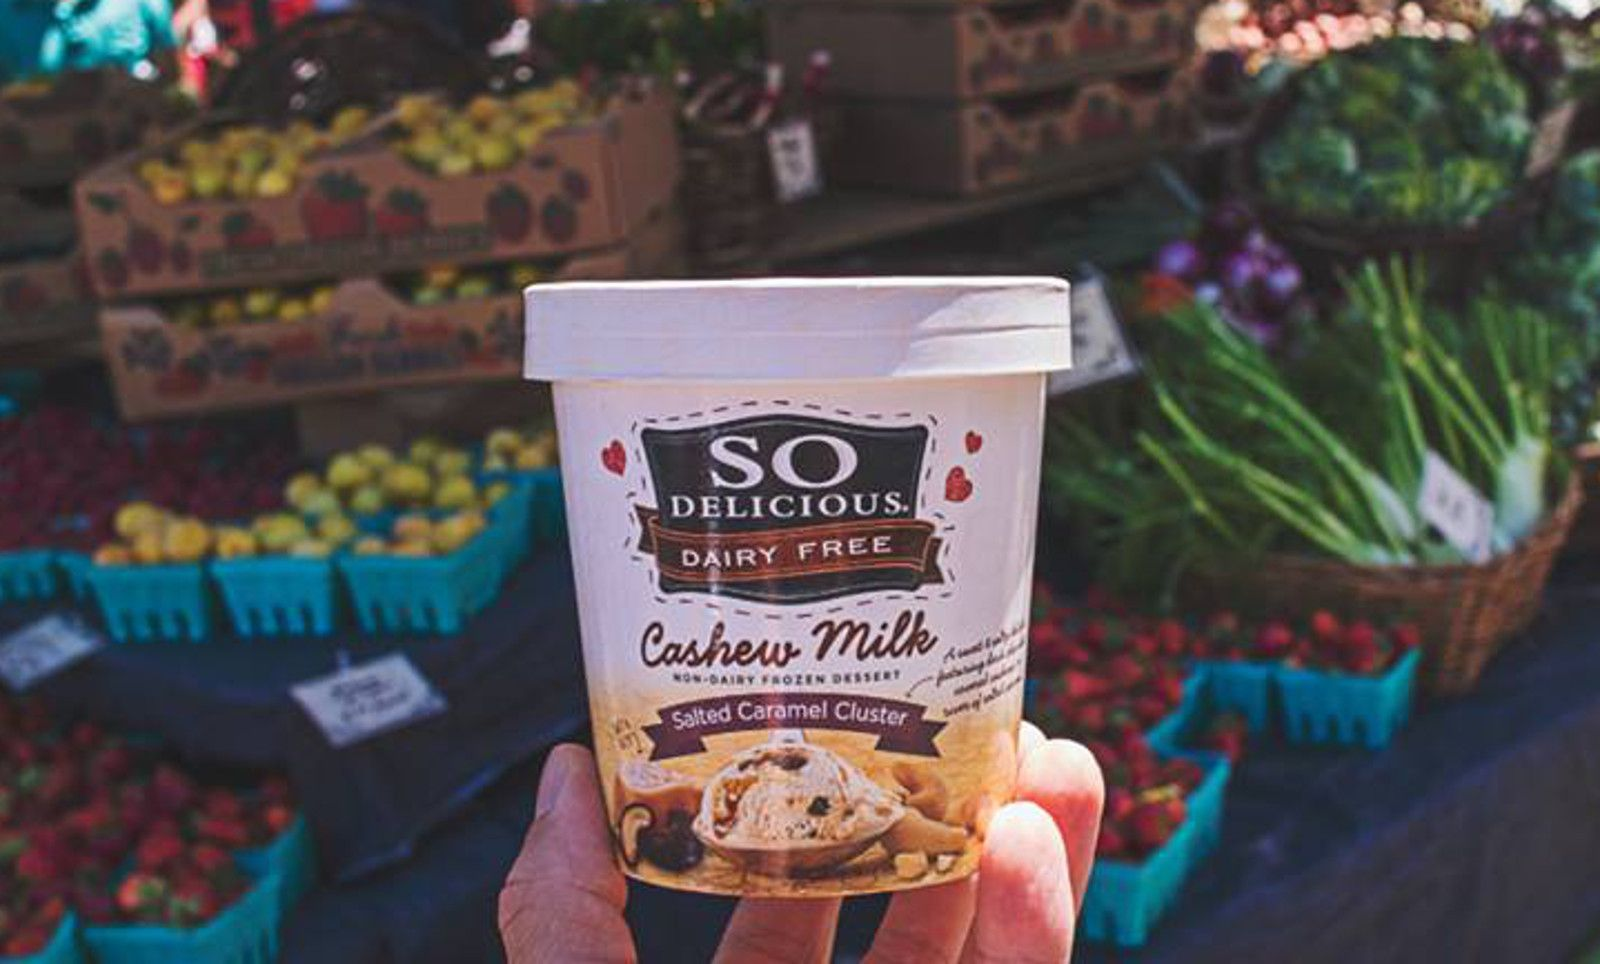 WIN! Vegan Cashew Ice Cream Arrives at 2,000 Walmart Locations!